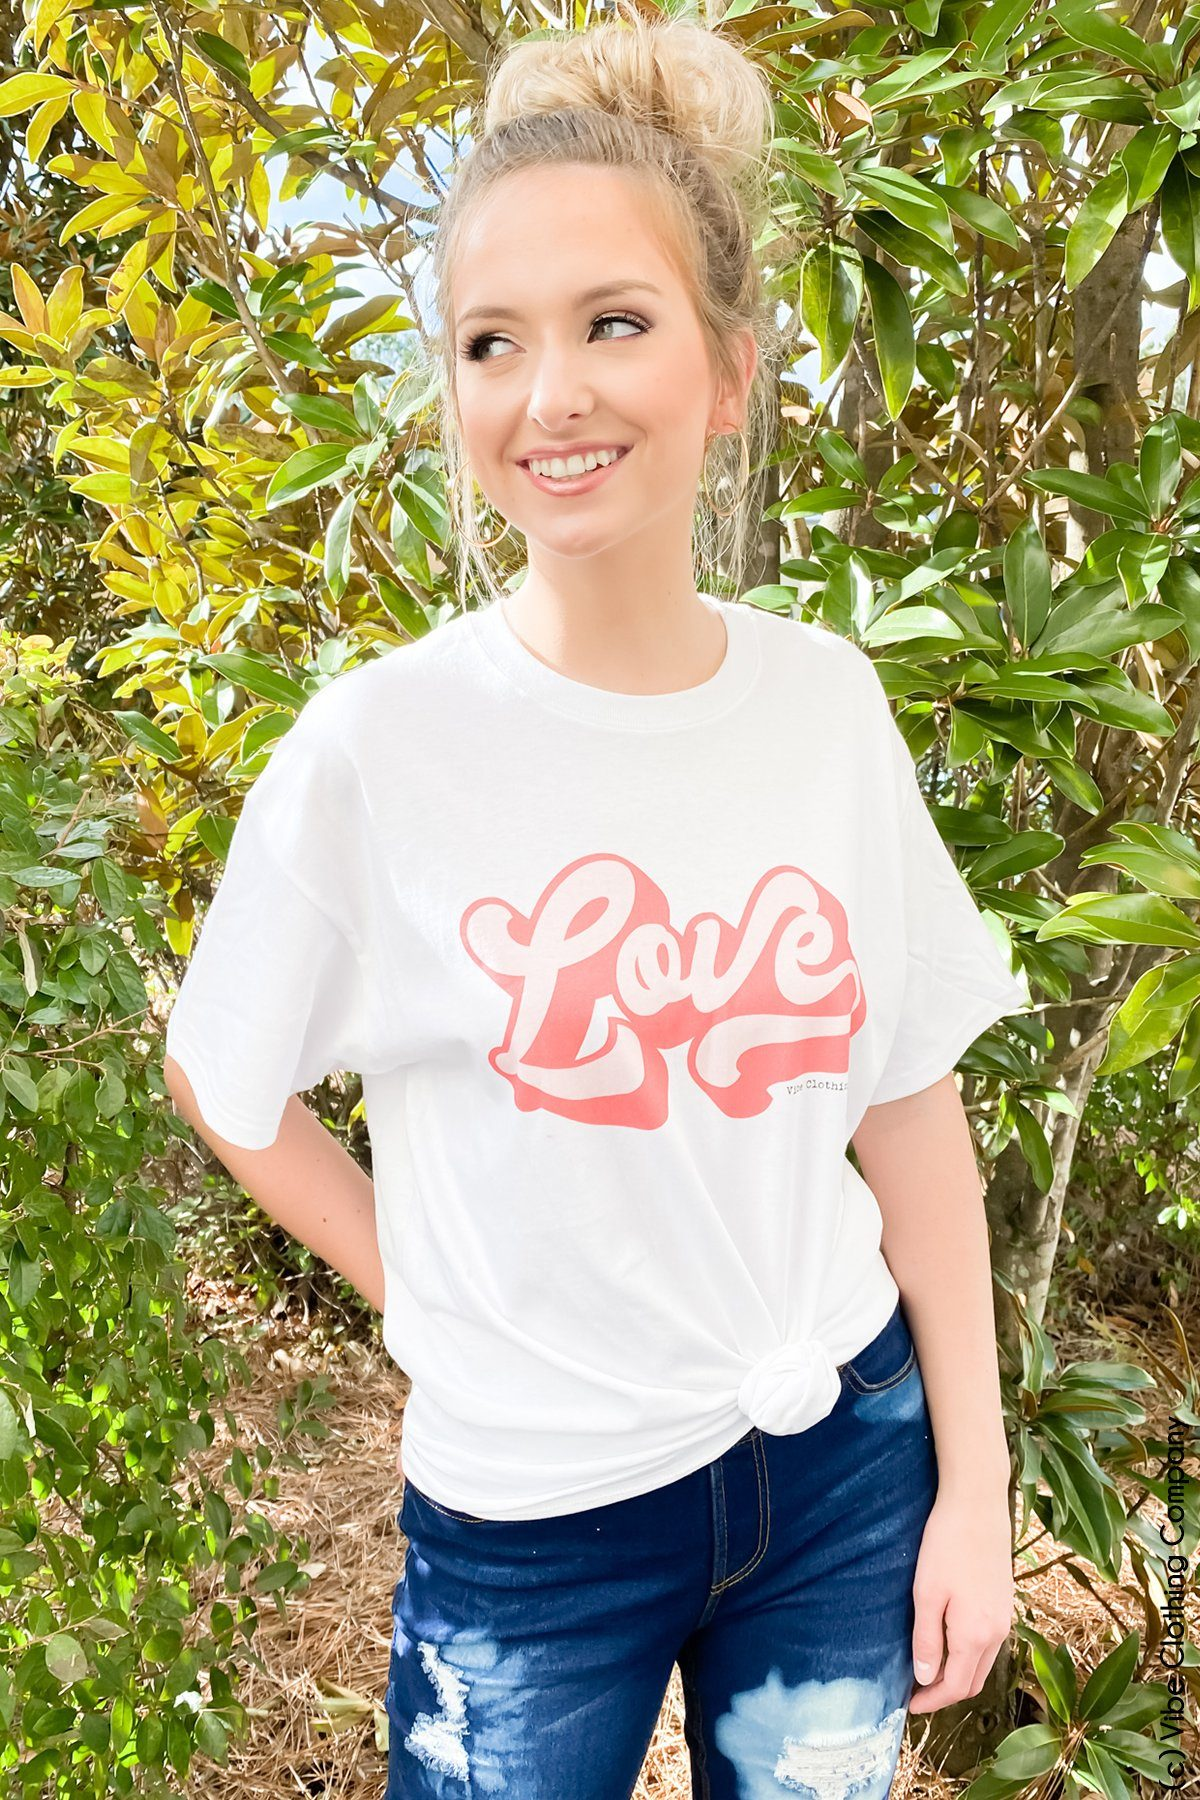 Retro Love Graphic Tee graphic tees Mark tee Small White